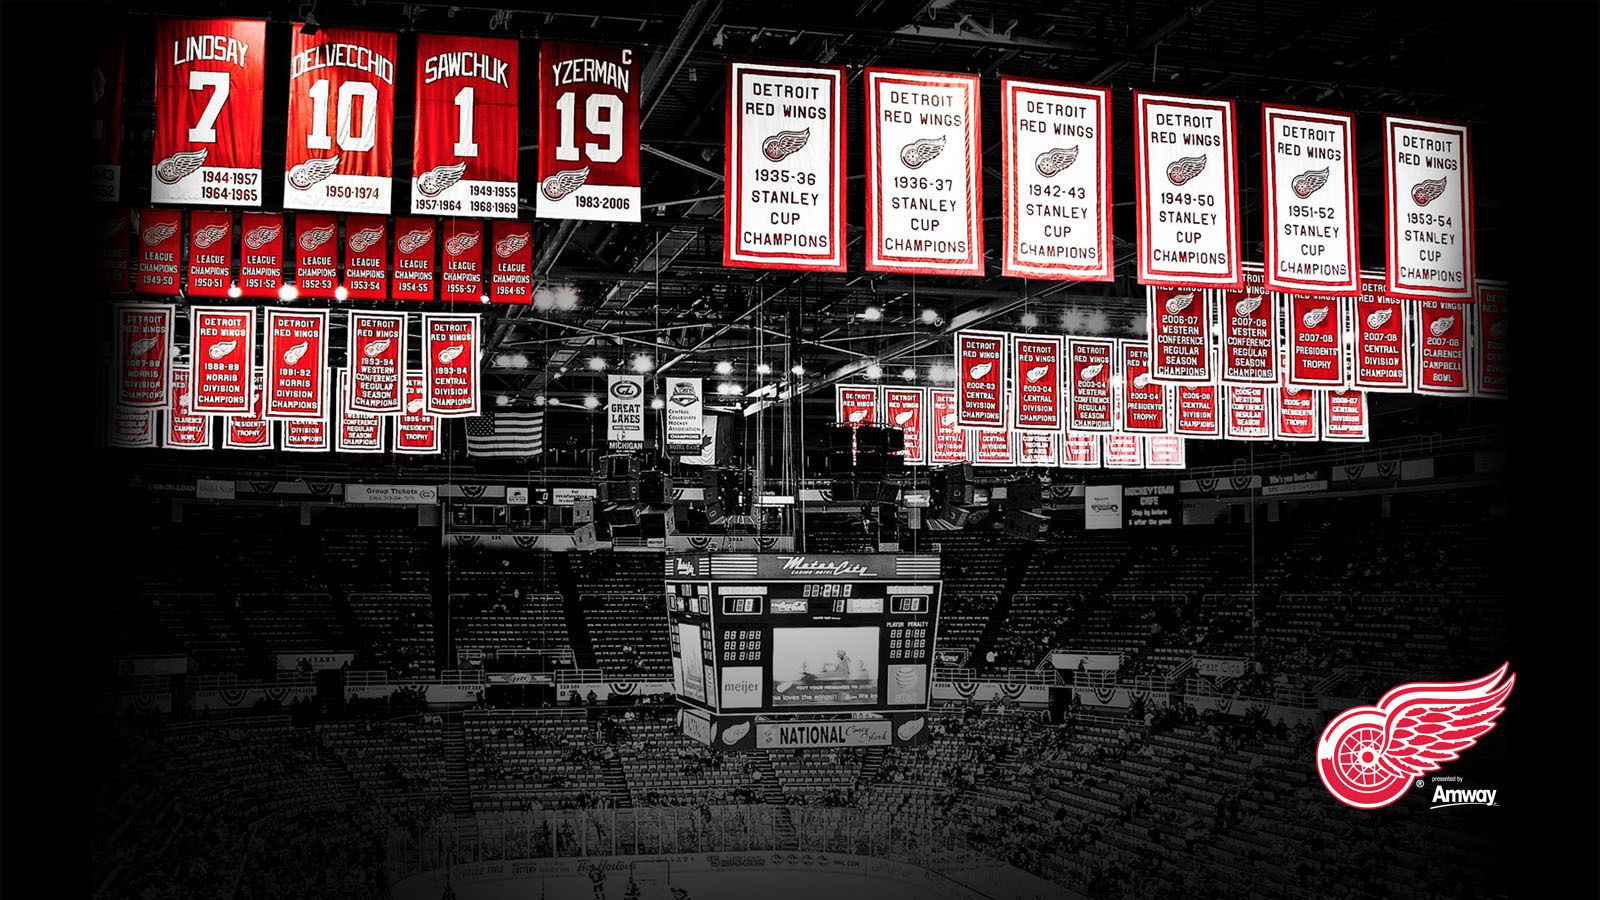 JA'99 Detroit-red-wings-wallpaper-38